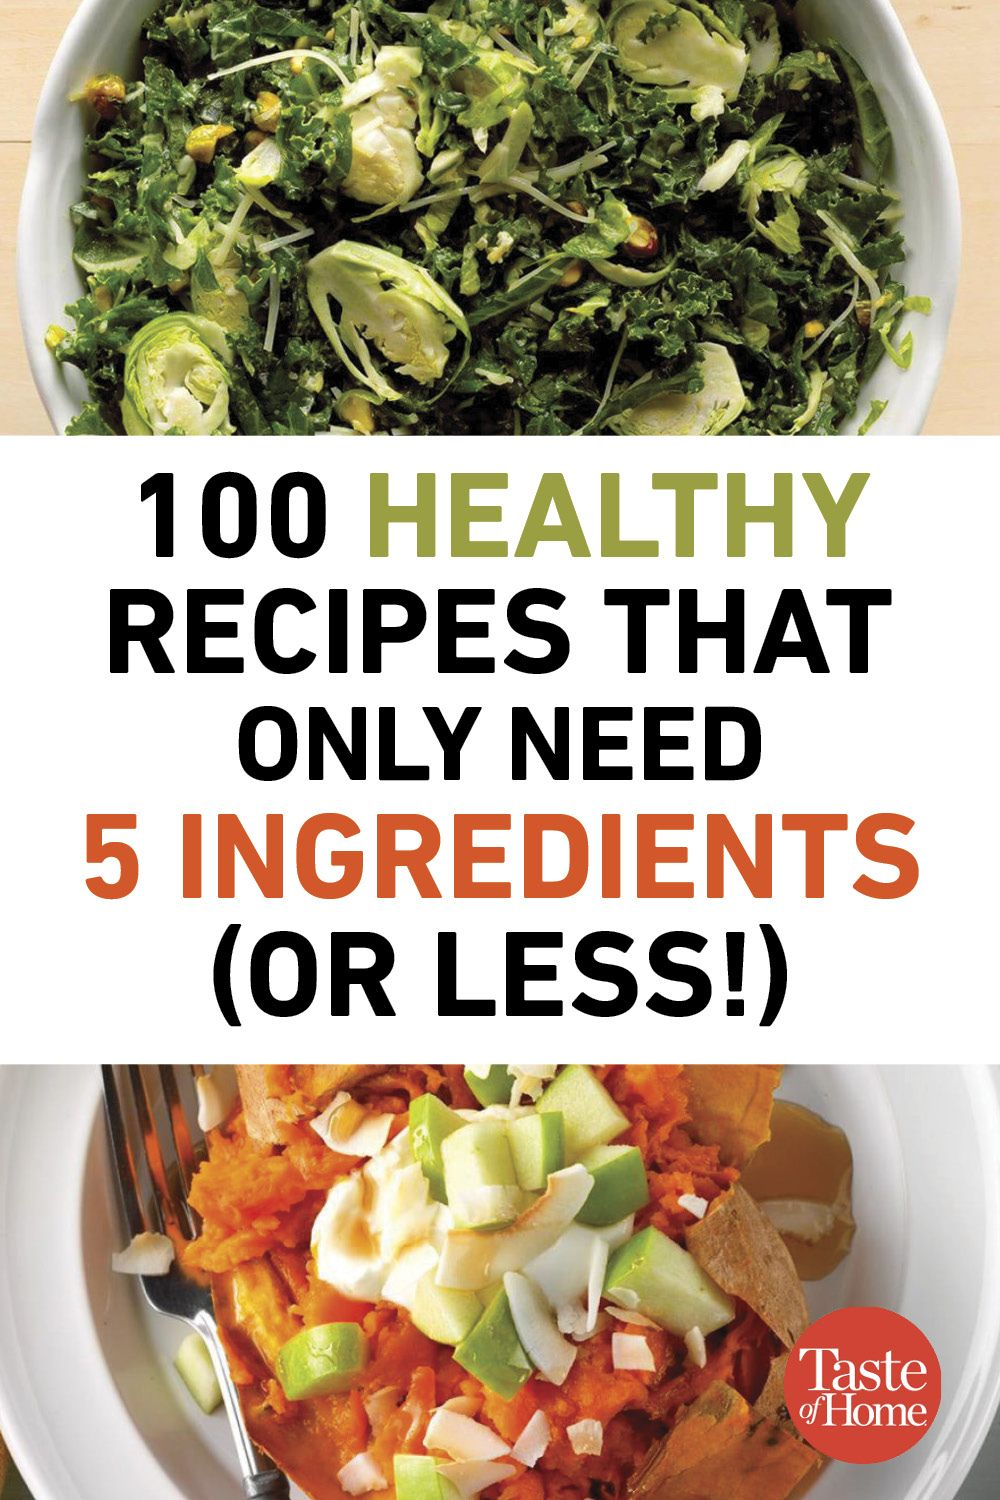 100 Healthy Recipes That Only Need 5 Ingredients Or Less